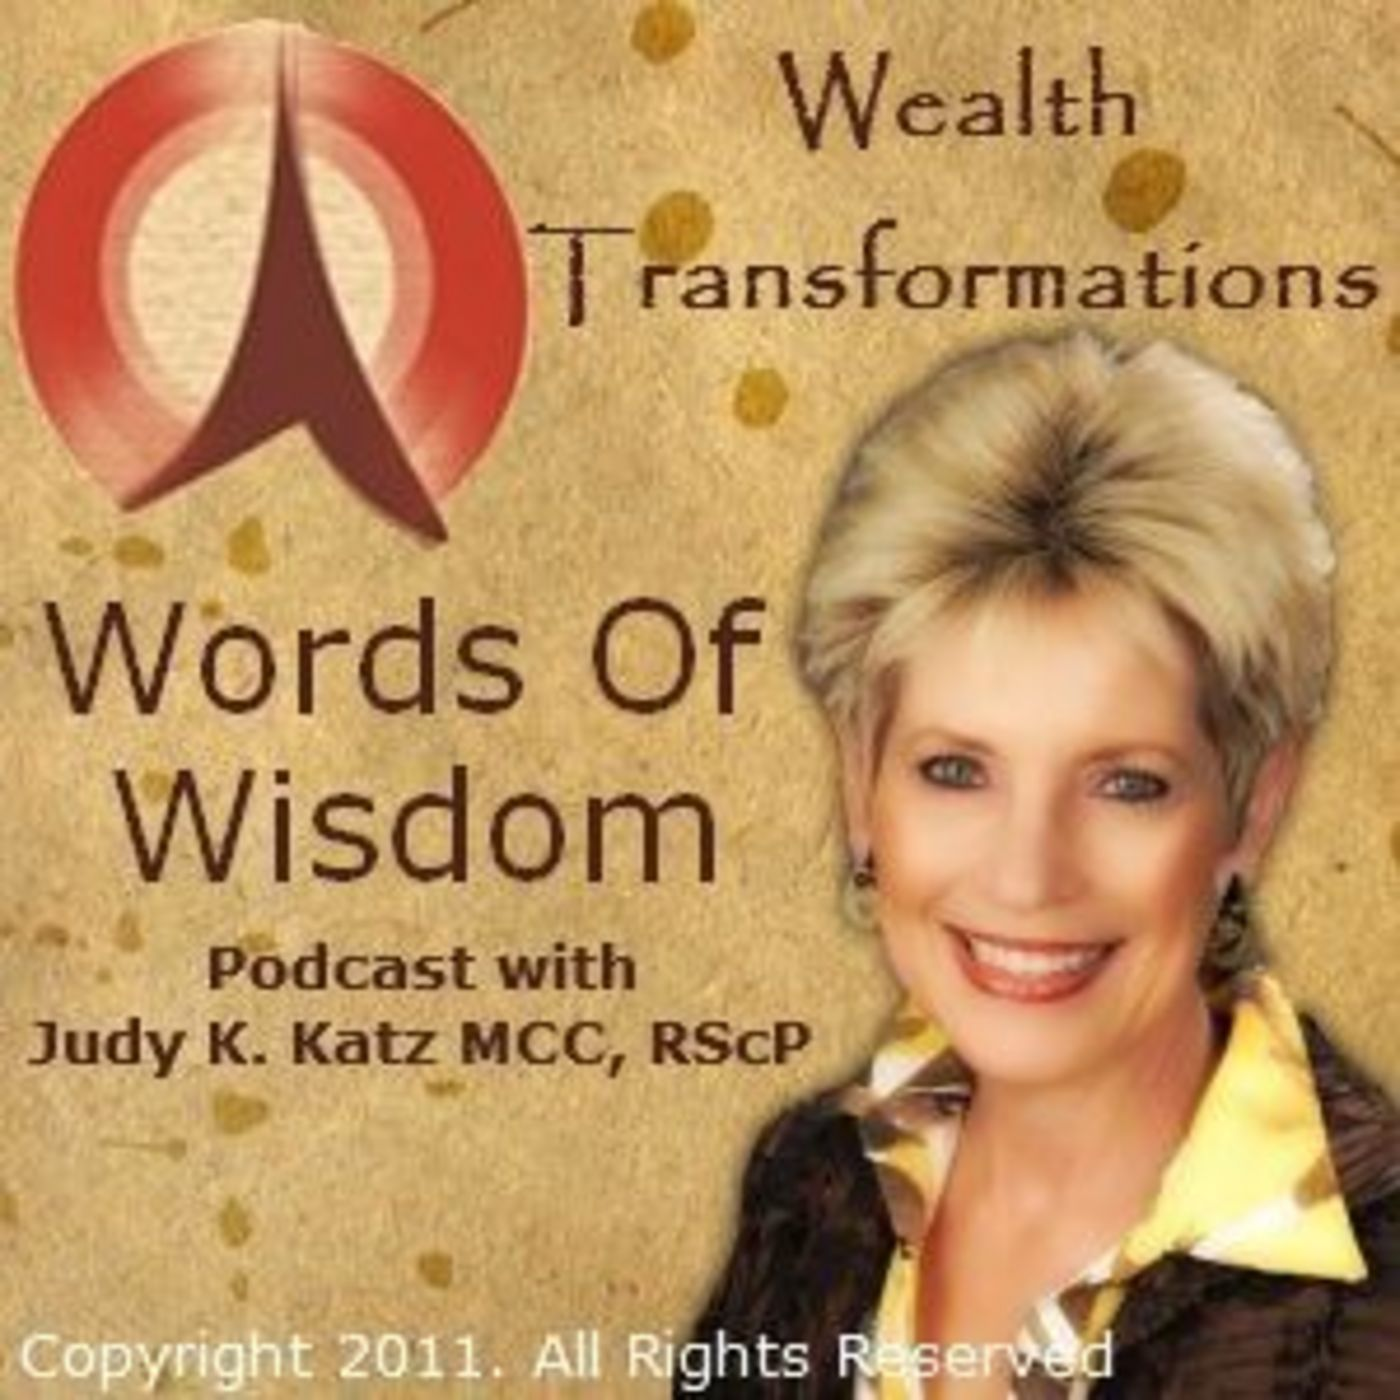 <![CDATA[Wealth Transformations Words of Wisdom Podcast]]>